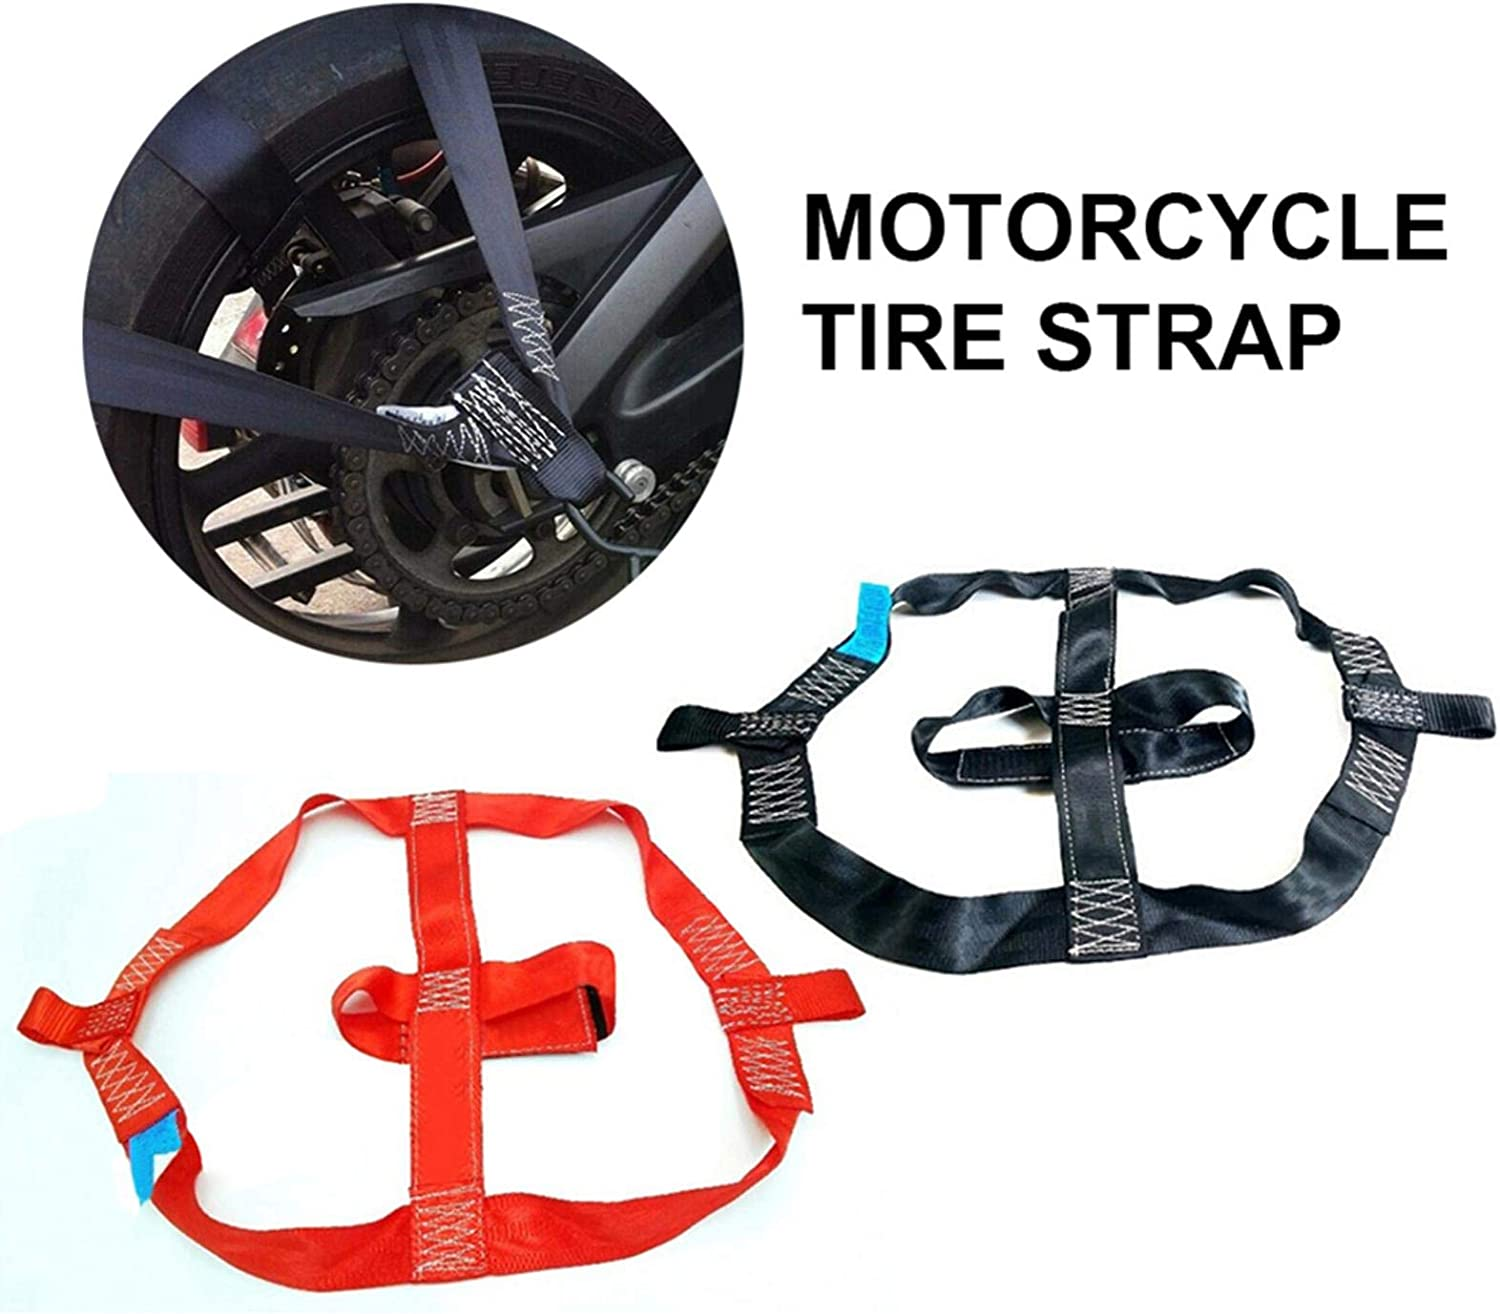 Per Newly Motorcycle Electric Vehicle Binding Strap Fixing Strap Fastening Strap Motorcycle Tire Strap Best Service